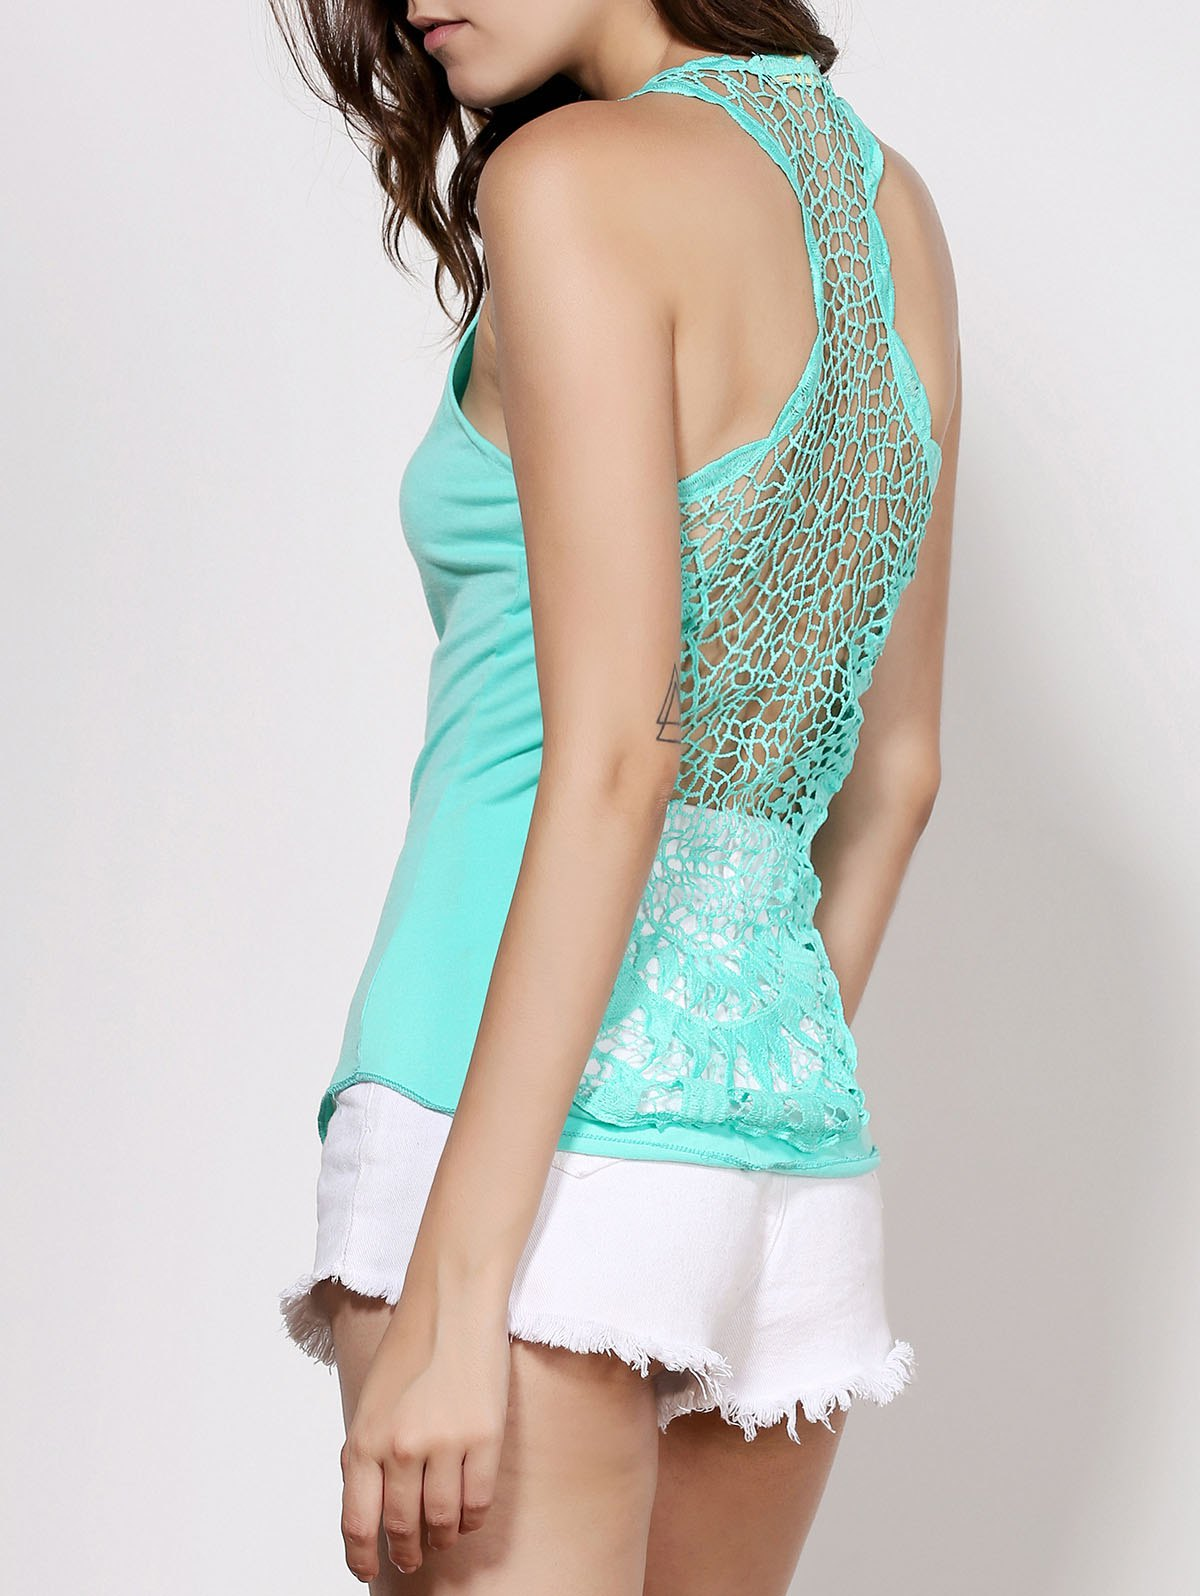 Endearing Round Neck Cut Out Lace Spliced Tank Top For Women